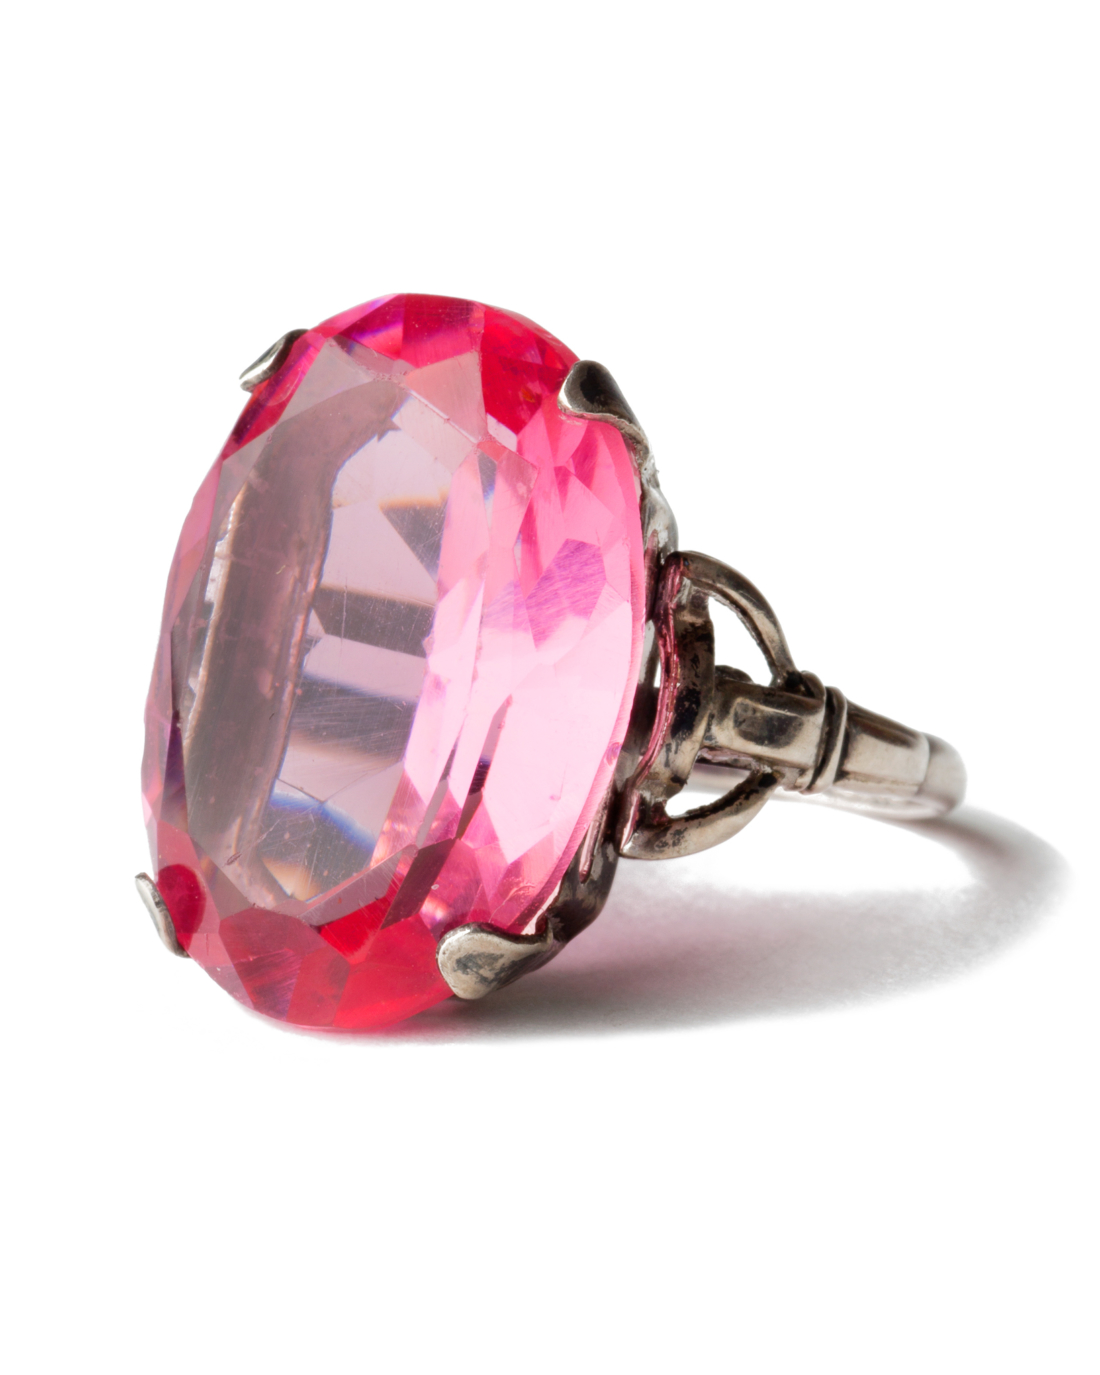 Art Deco Pink Sapphire Glass Sterling Ring, circa 1930's